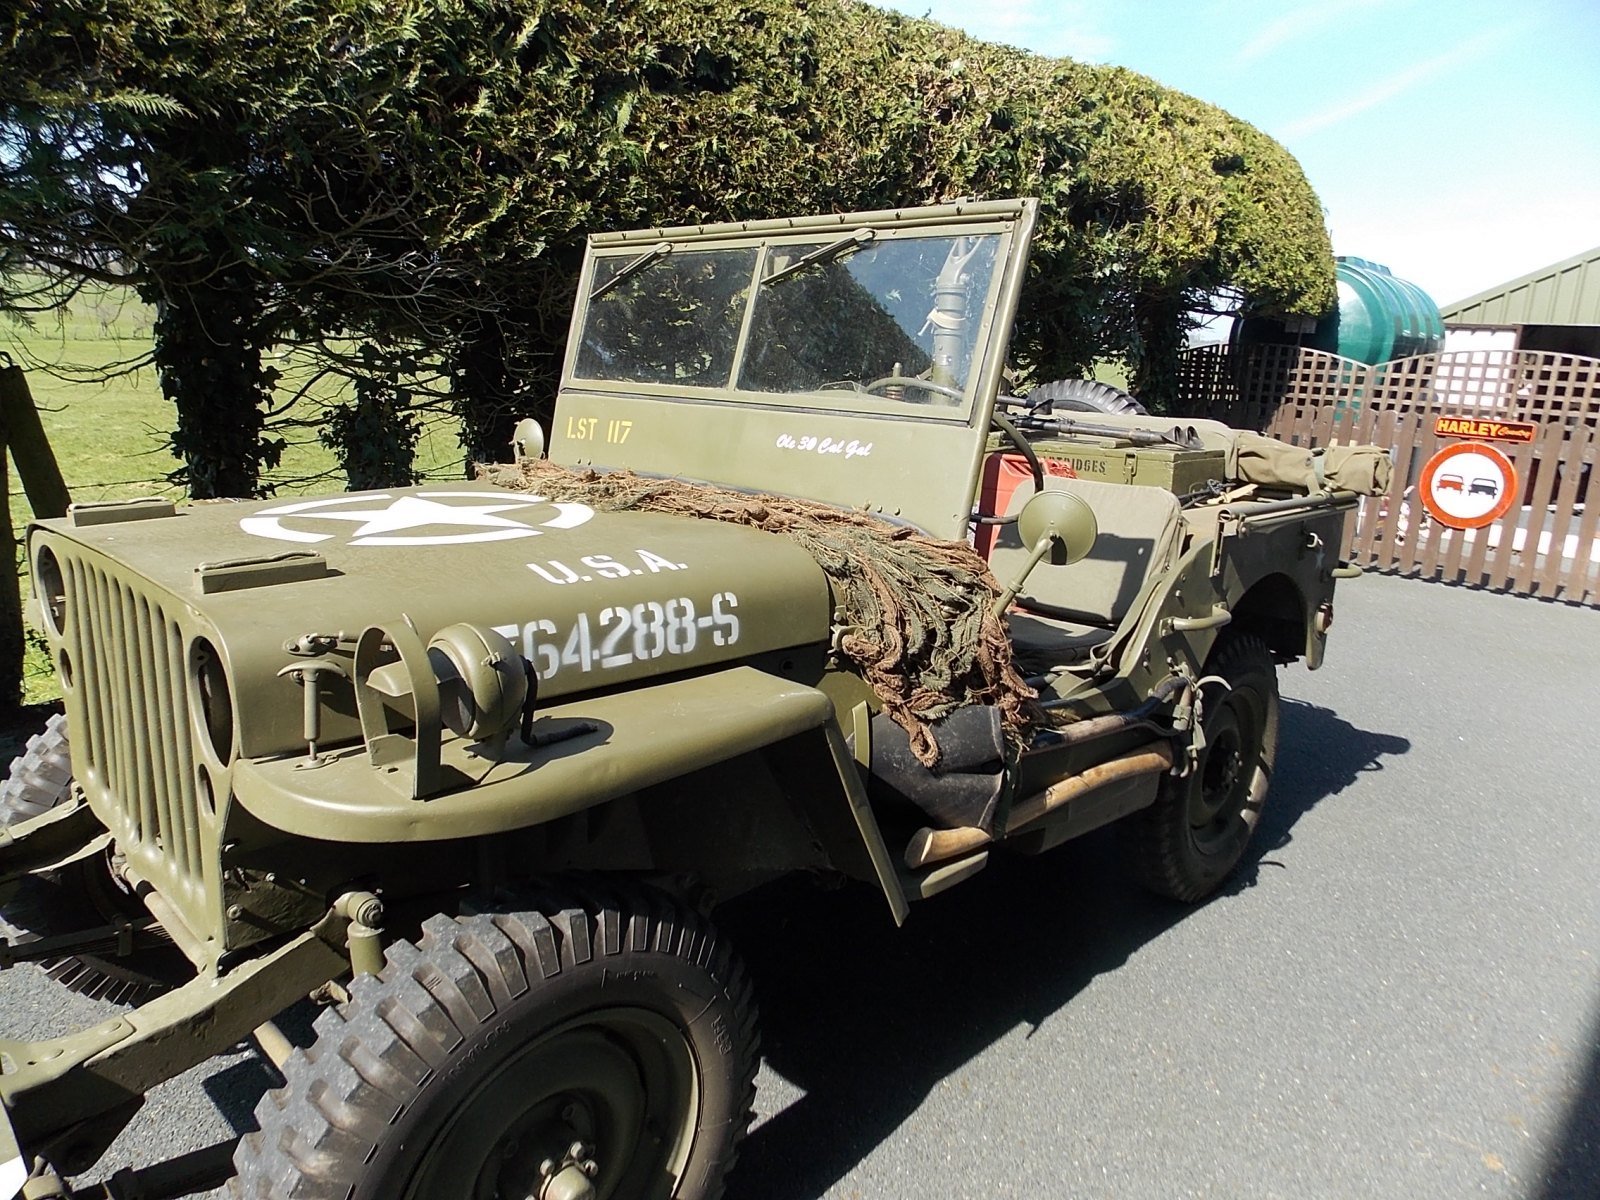 1945-Ford-GPW-Jeep-side-view-The-Abingdon-Collection-2017